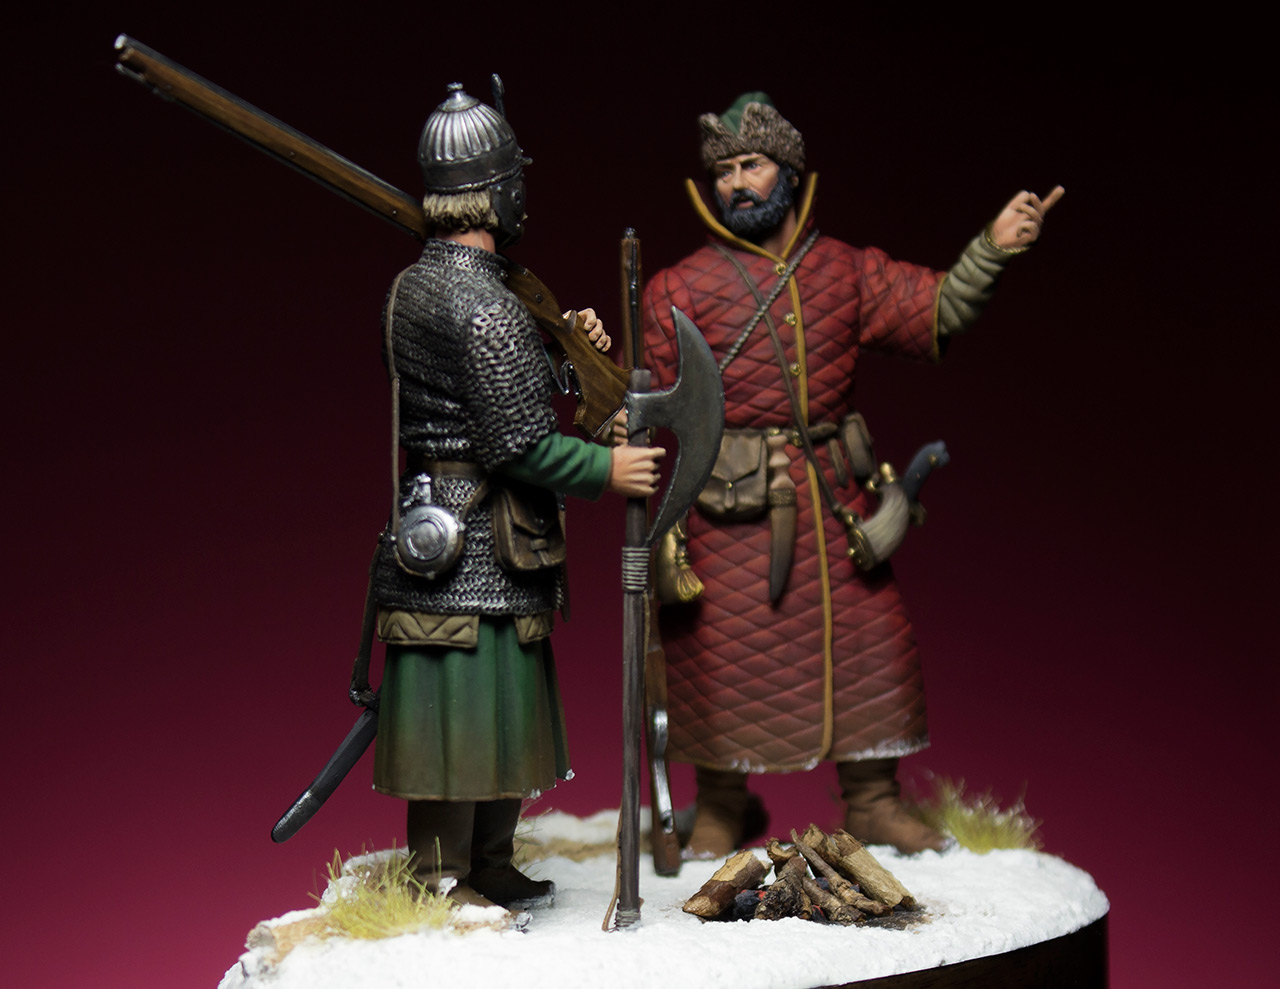 Figures: Russian musketeers, photo #6